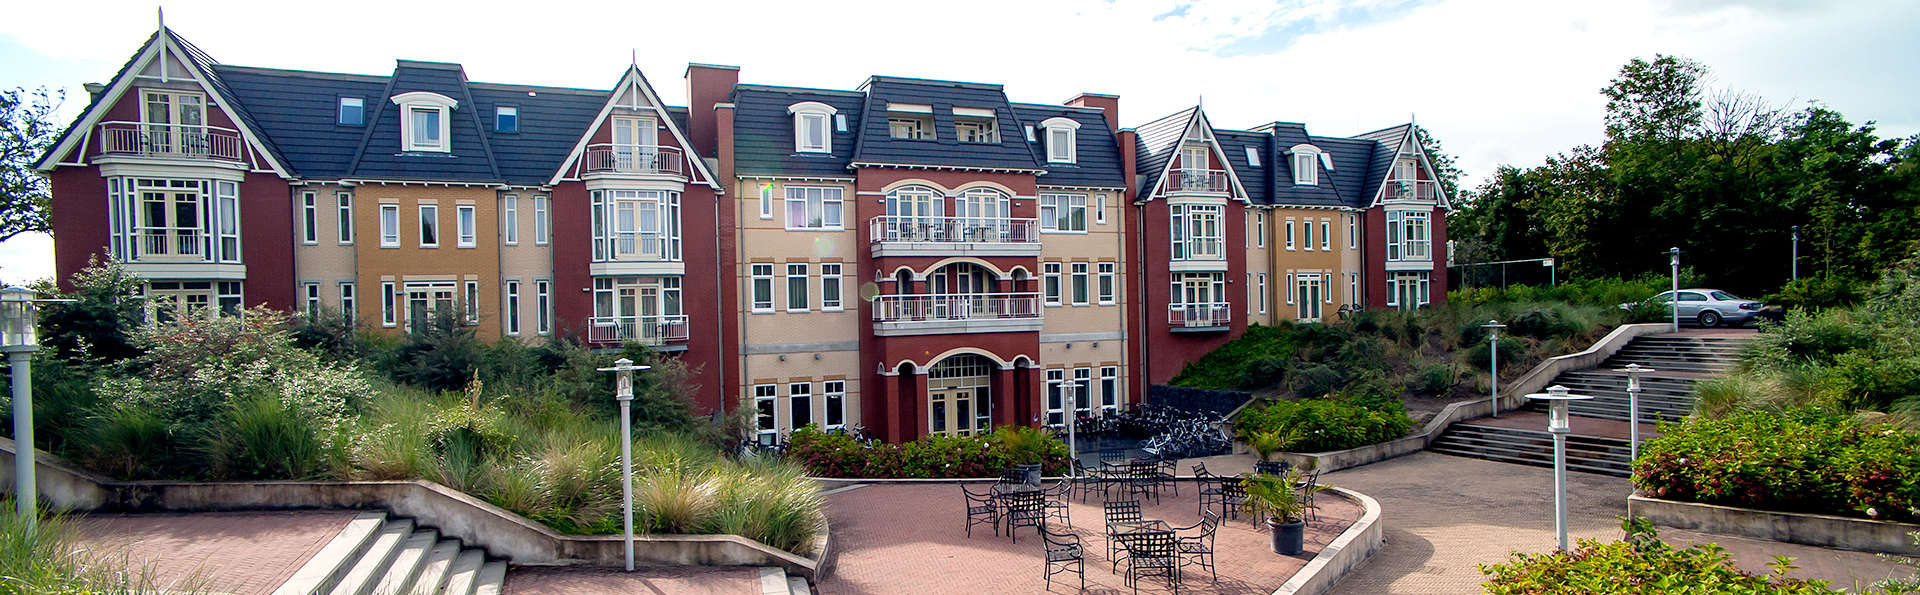 Grand Hotel Ter Duin - EDIT_NEW_FRONT.jpg